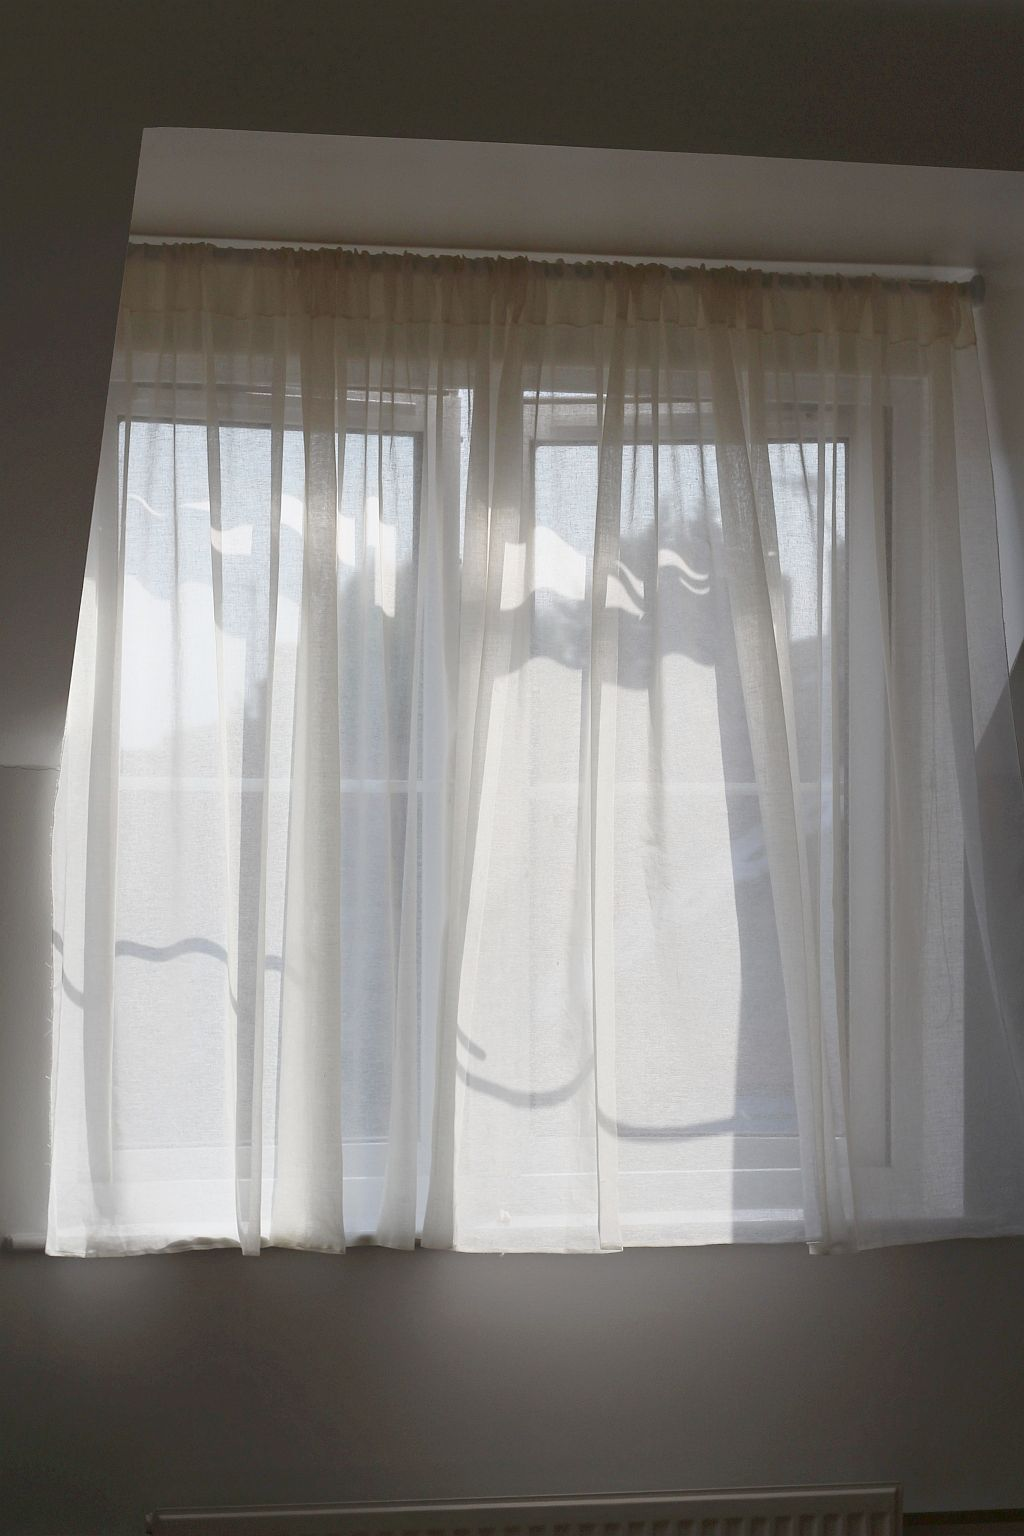 Muslin curtains with a slot